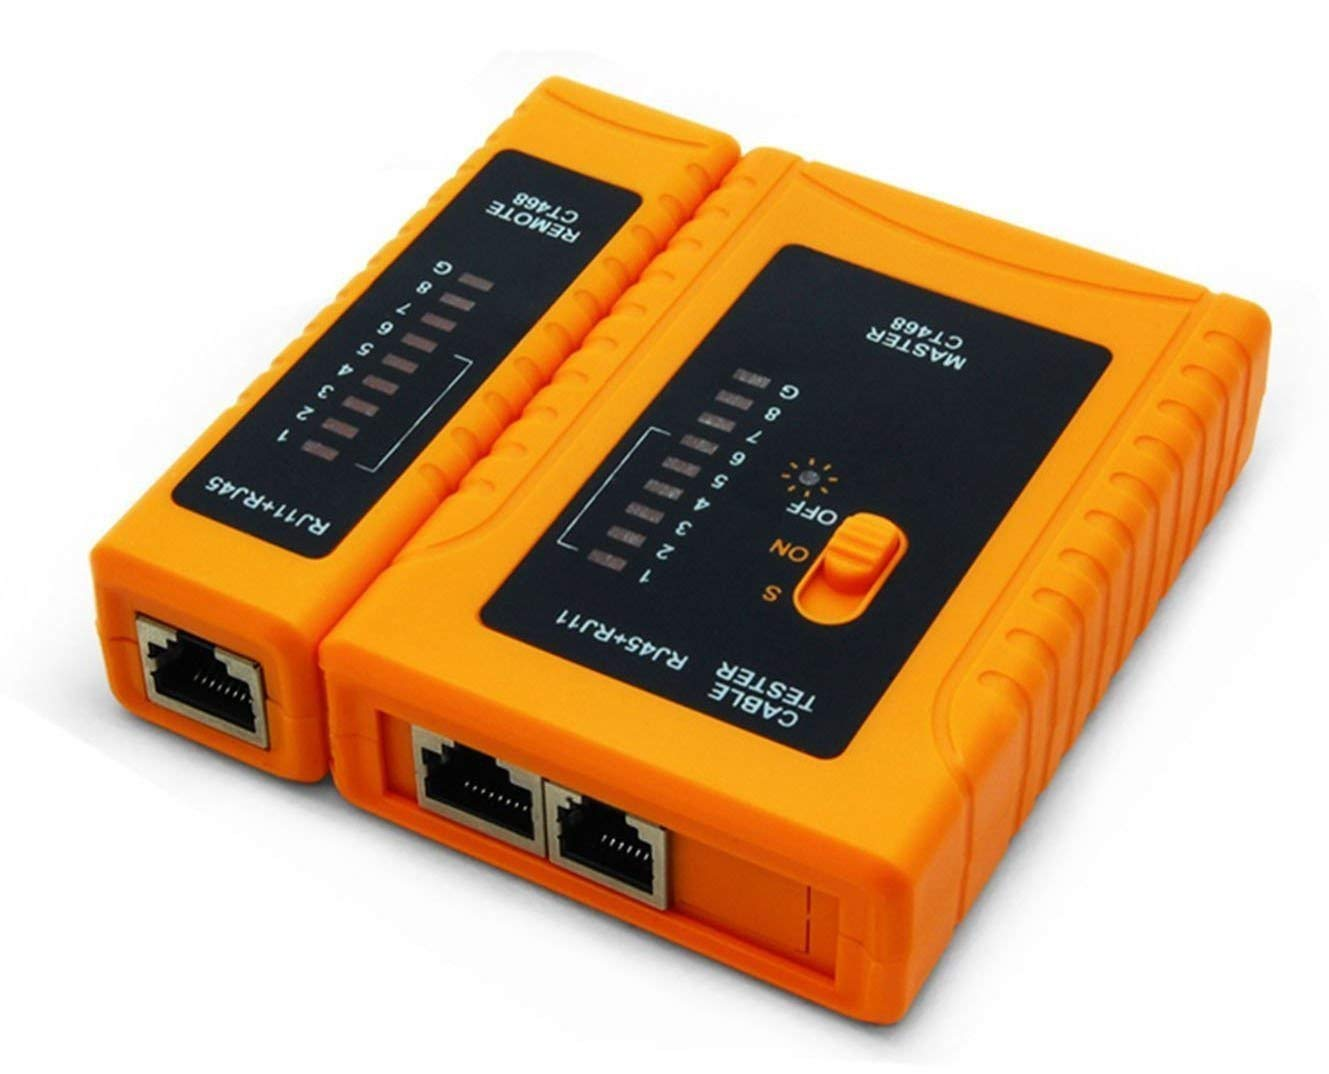 iMBAPrice - RJ45 Network Cable Tester